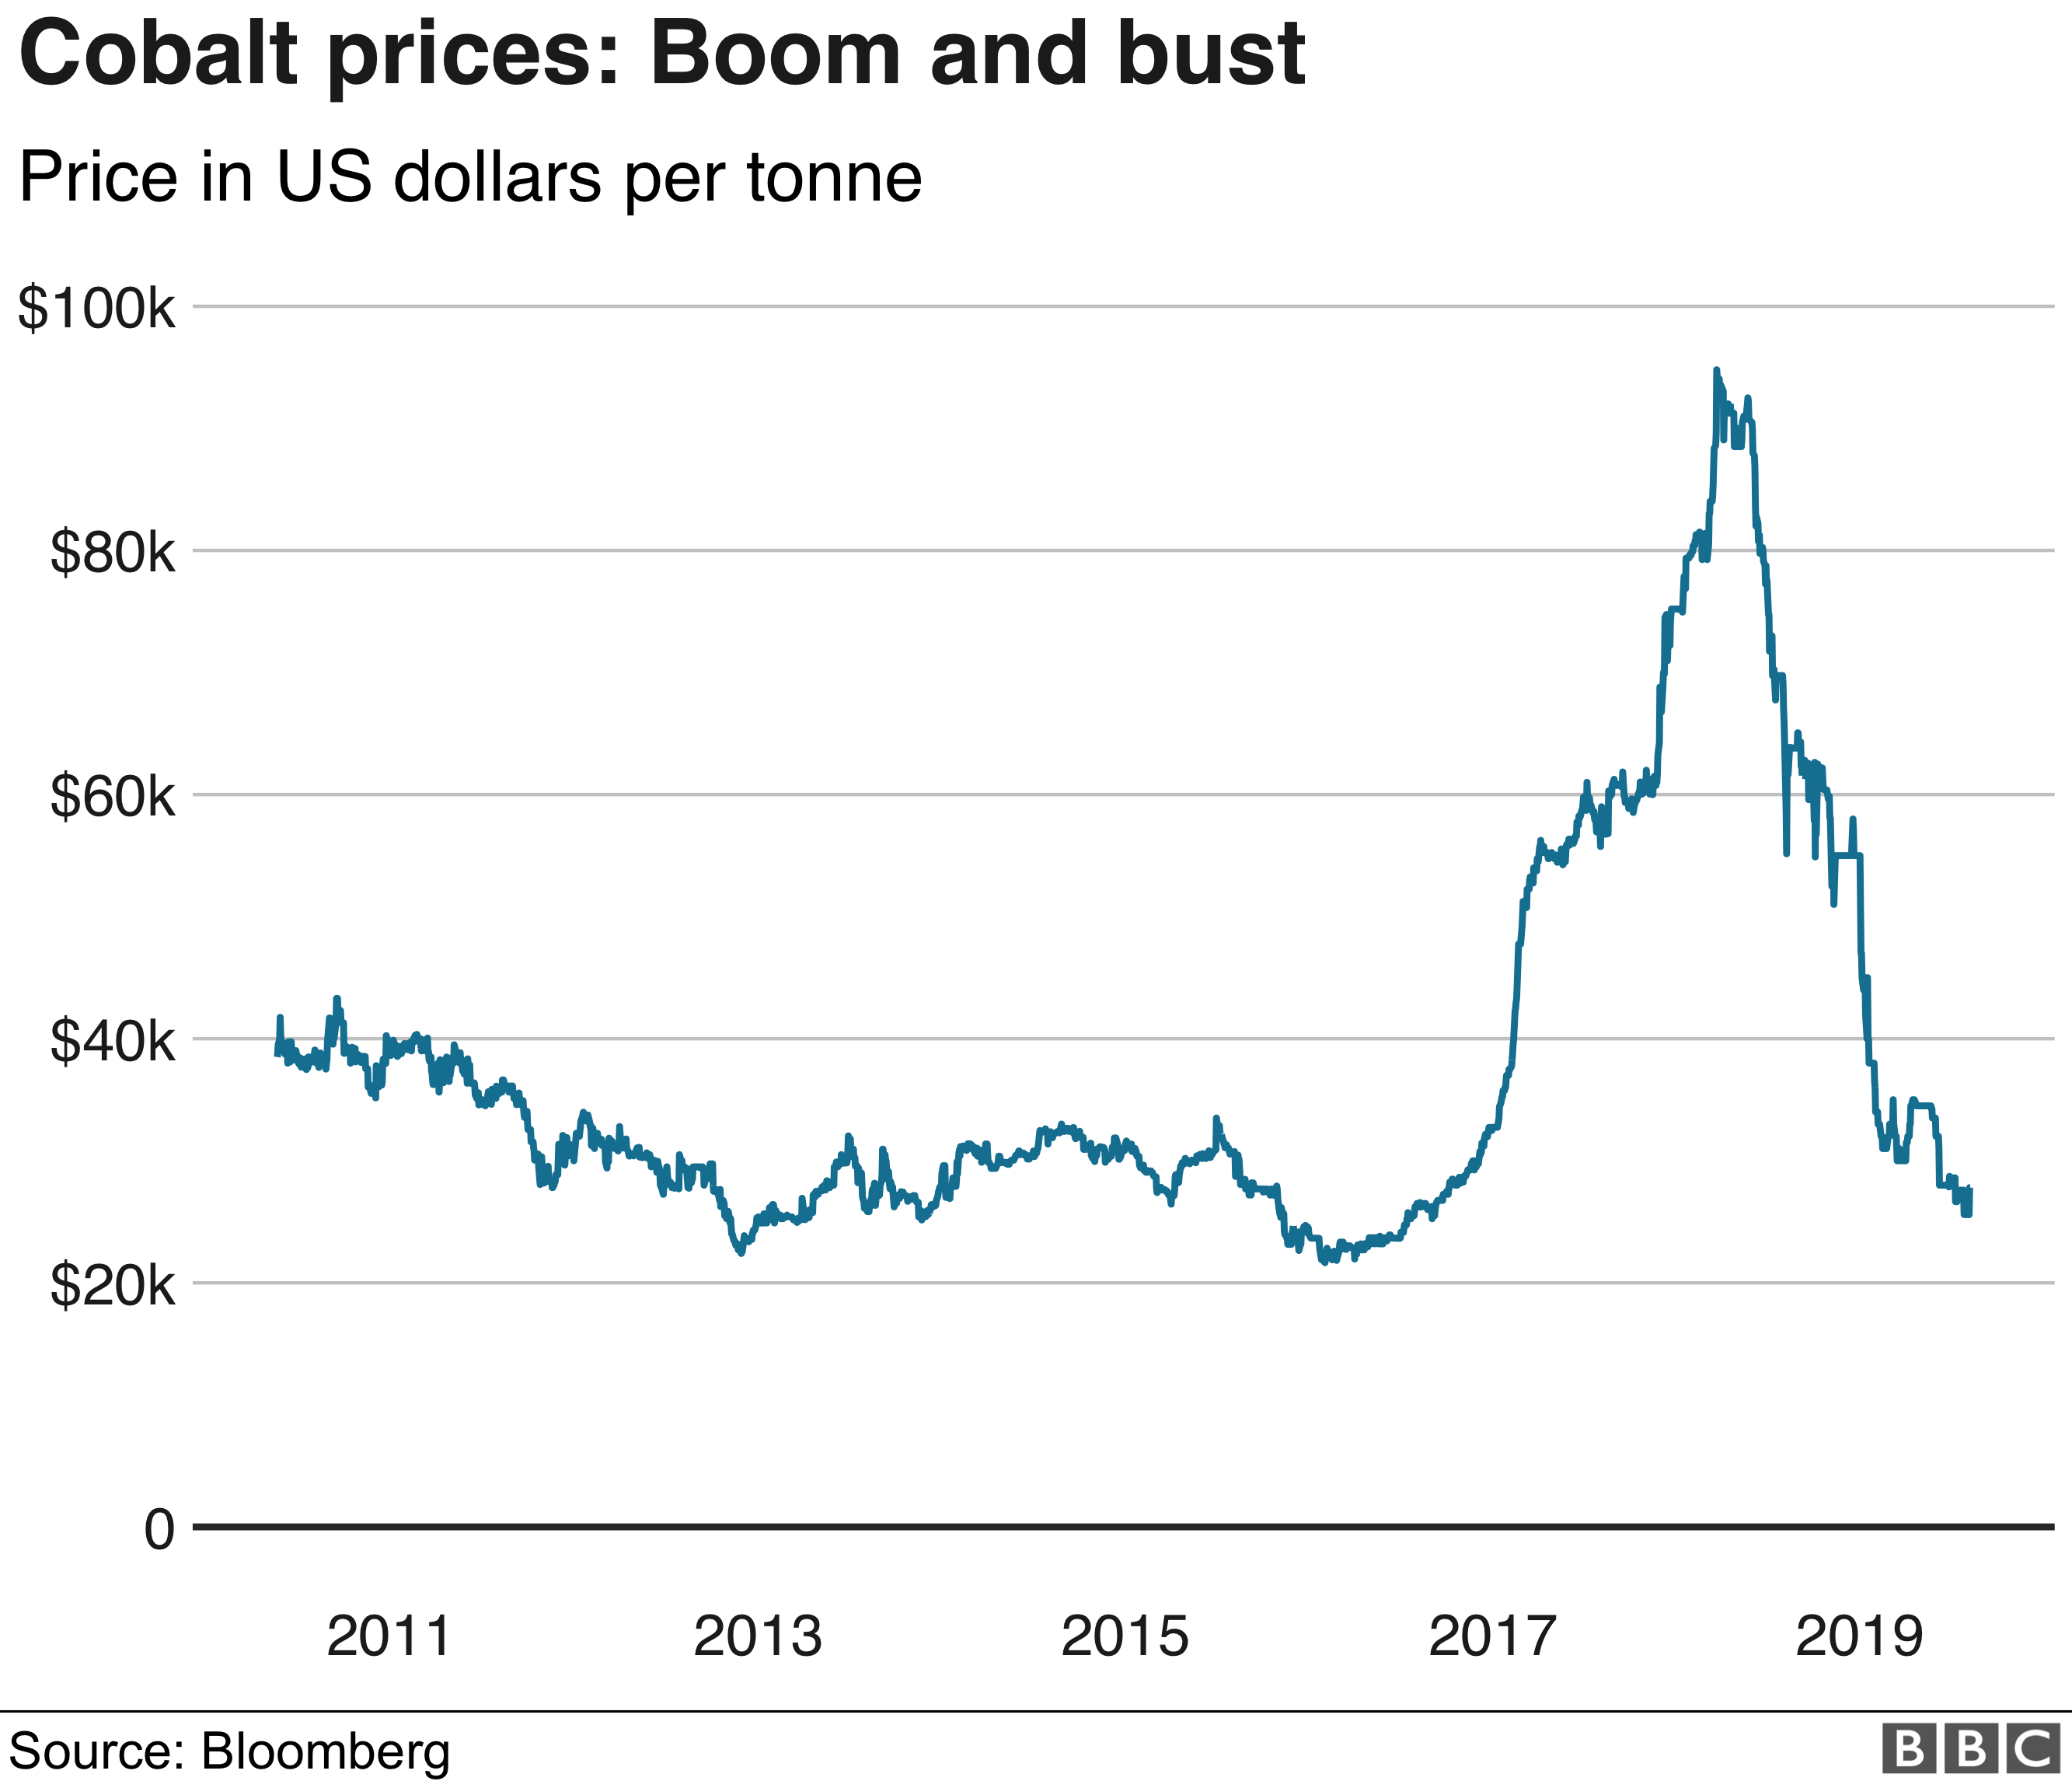 Graph of cobalt price boom and bust